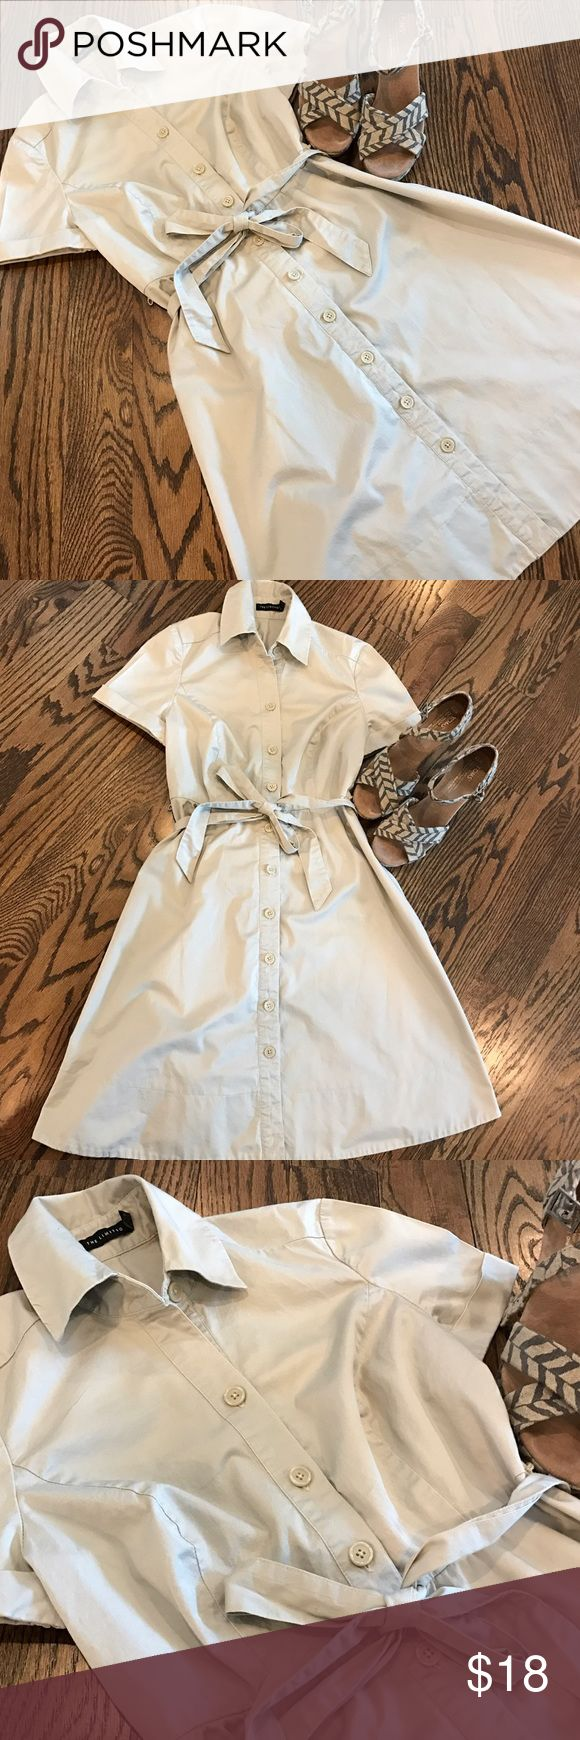 ✨New✨Khaki Limited shirt dress Crisp & classic, this khaki shirt dress from the Limited has endless style potential.  It features buttons down the front, a tied waist and cuffed sleeves.  Khaki belt included, but change the belt to change it to your style.  In very good used condition.  Size 2. The Limited Dresses